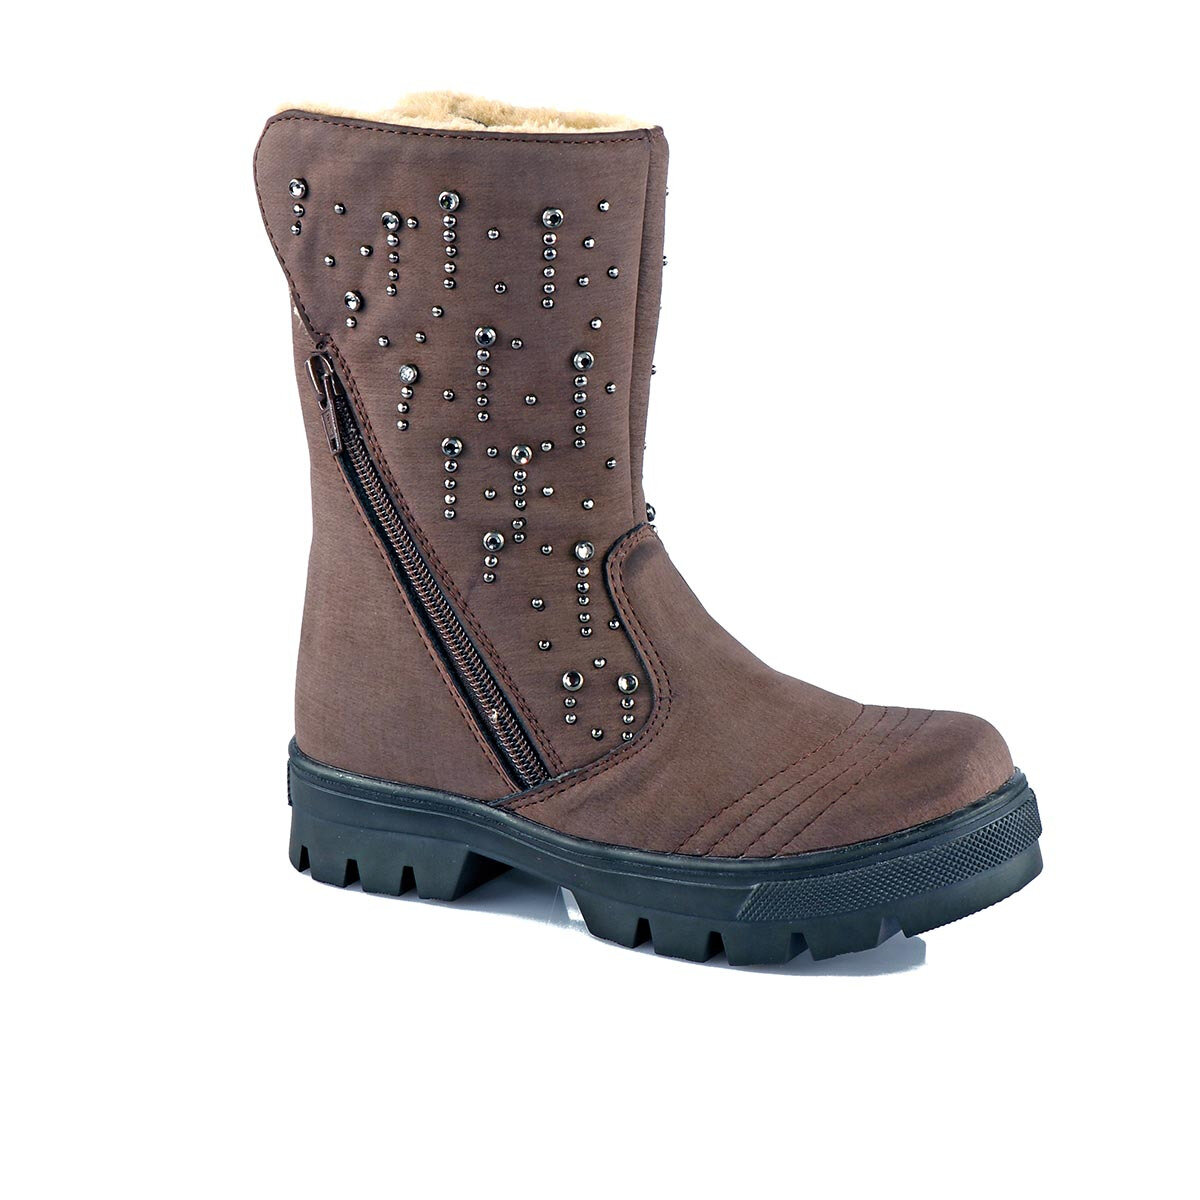 FLO 942.V. 566 FILET BOOT Brown Female Child Boots Vicco